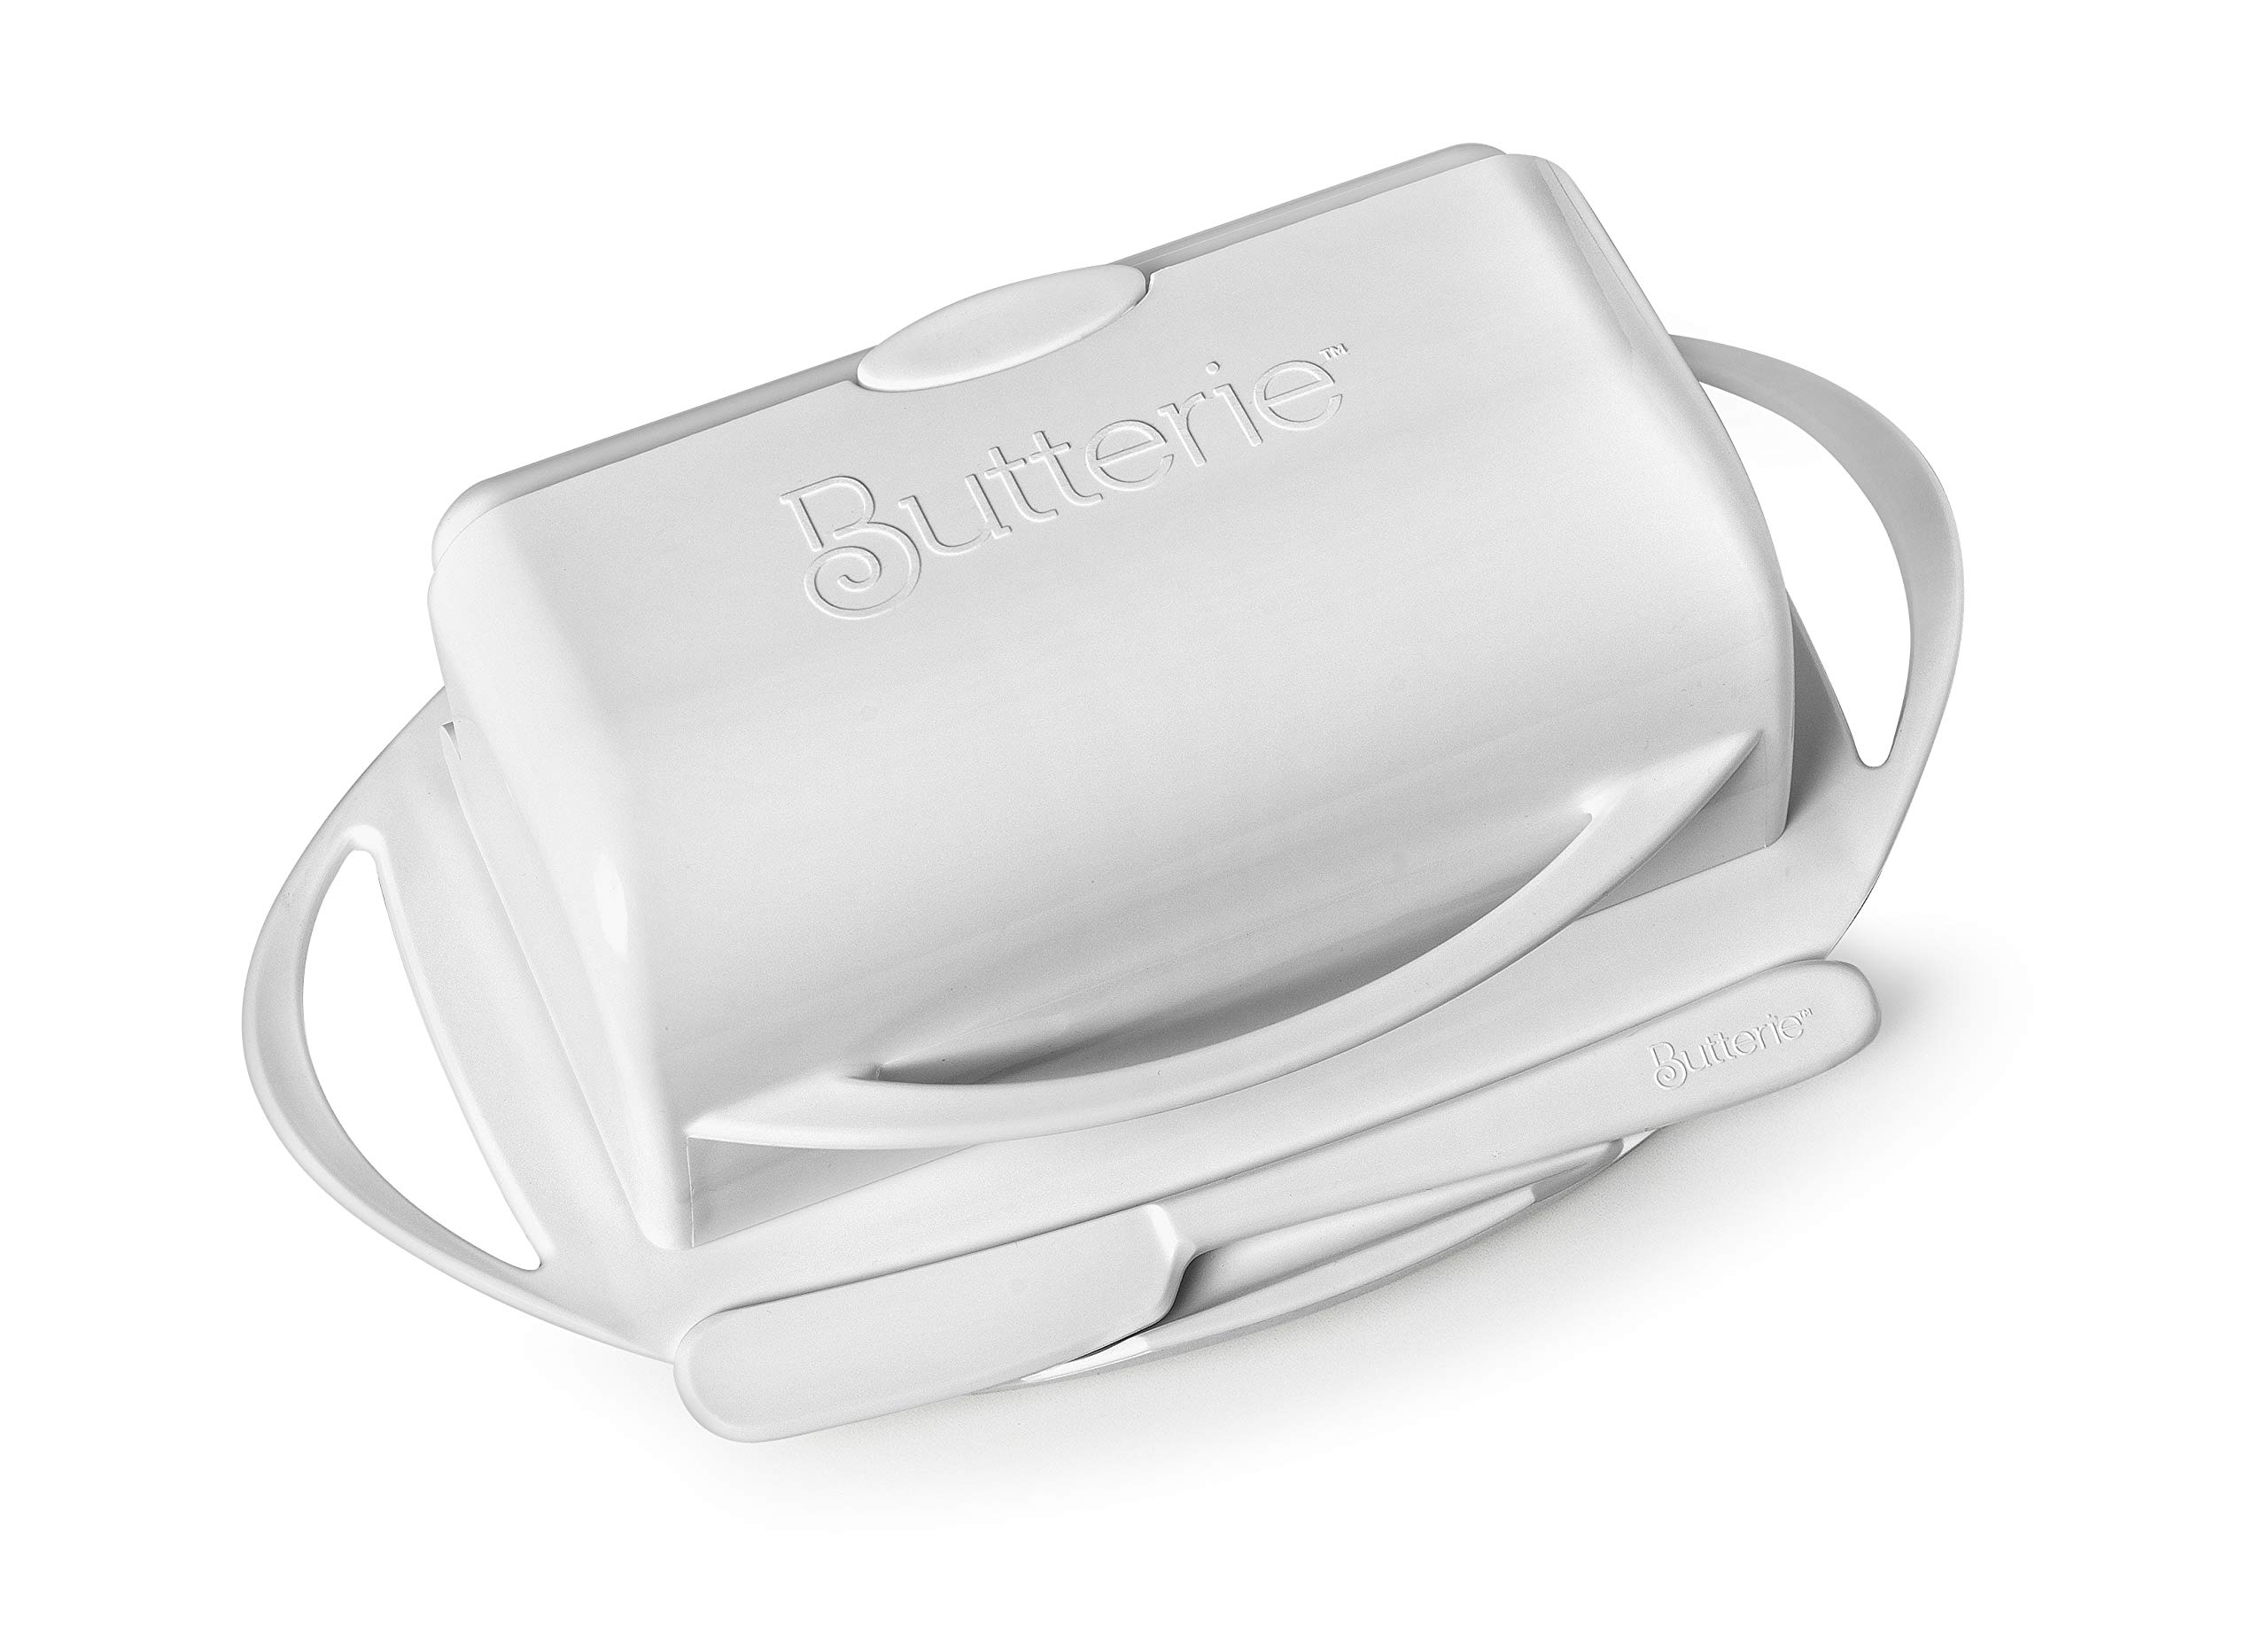 Butterie Flip-Top Butter Dish with Matching Spreader by Butterie (Image #3)